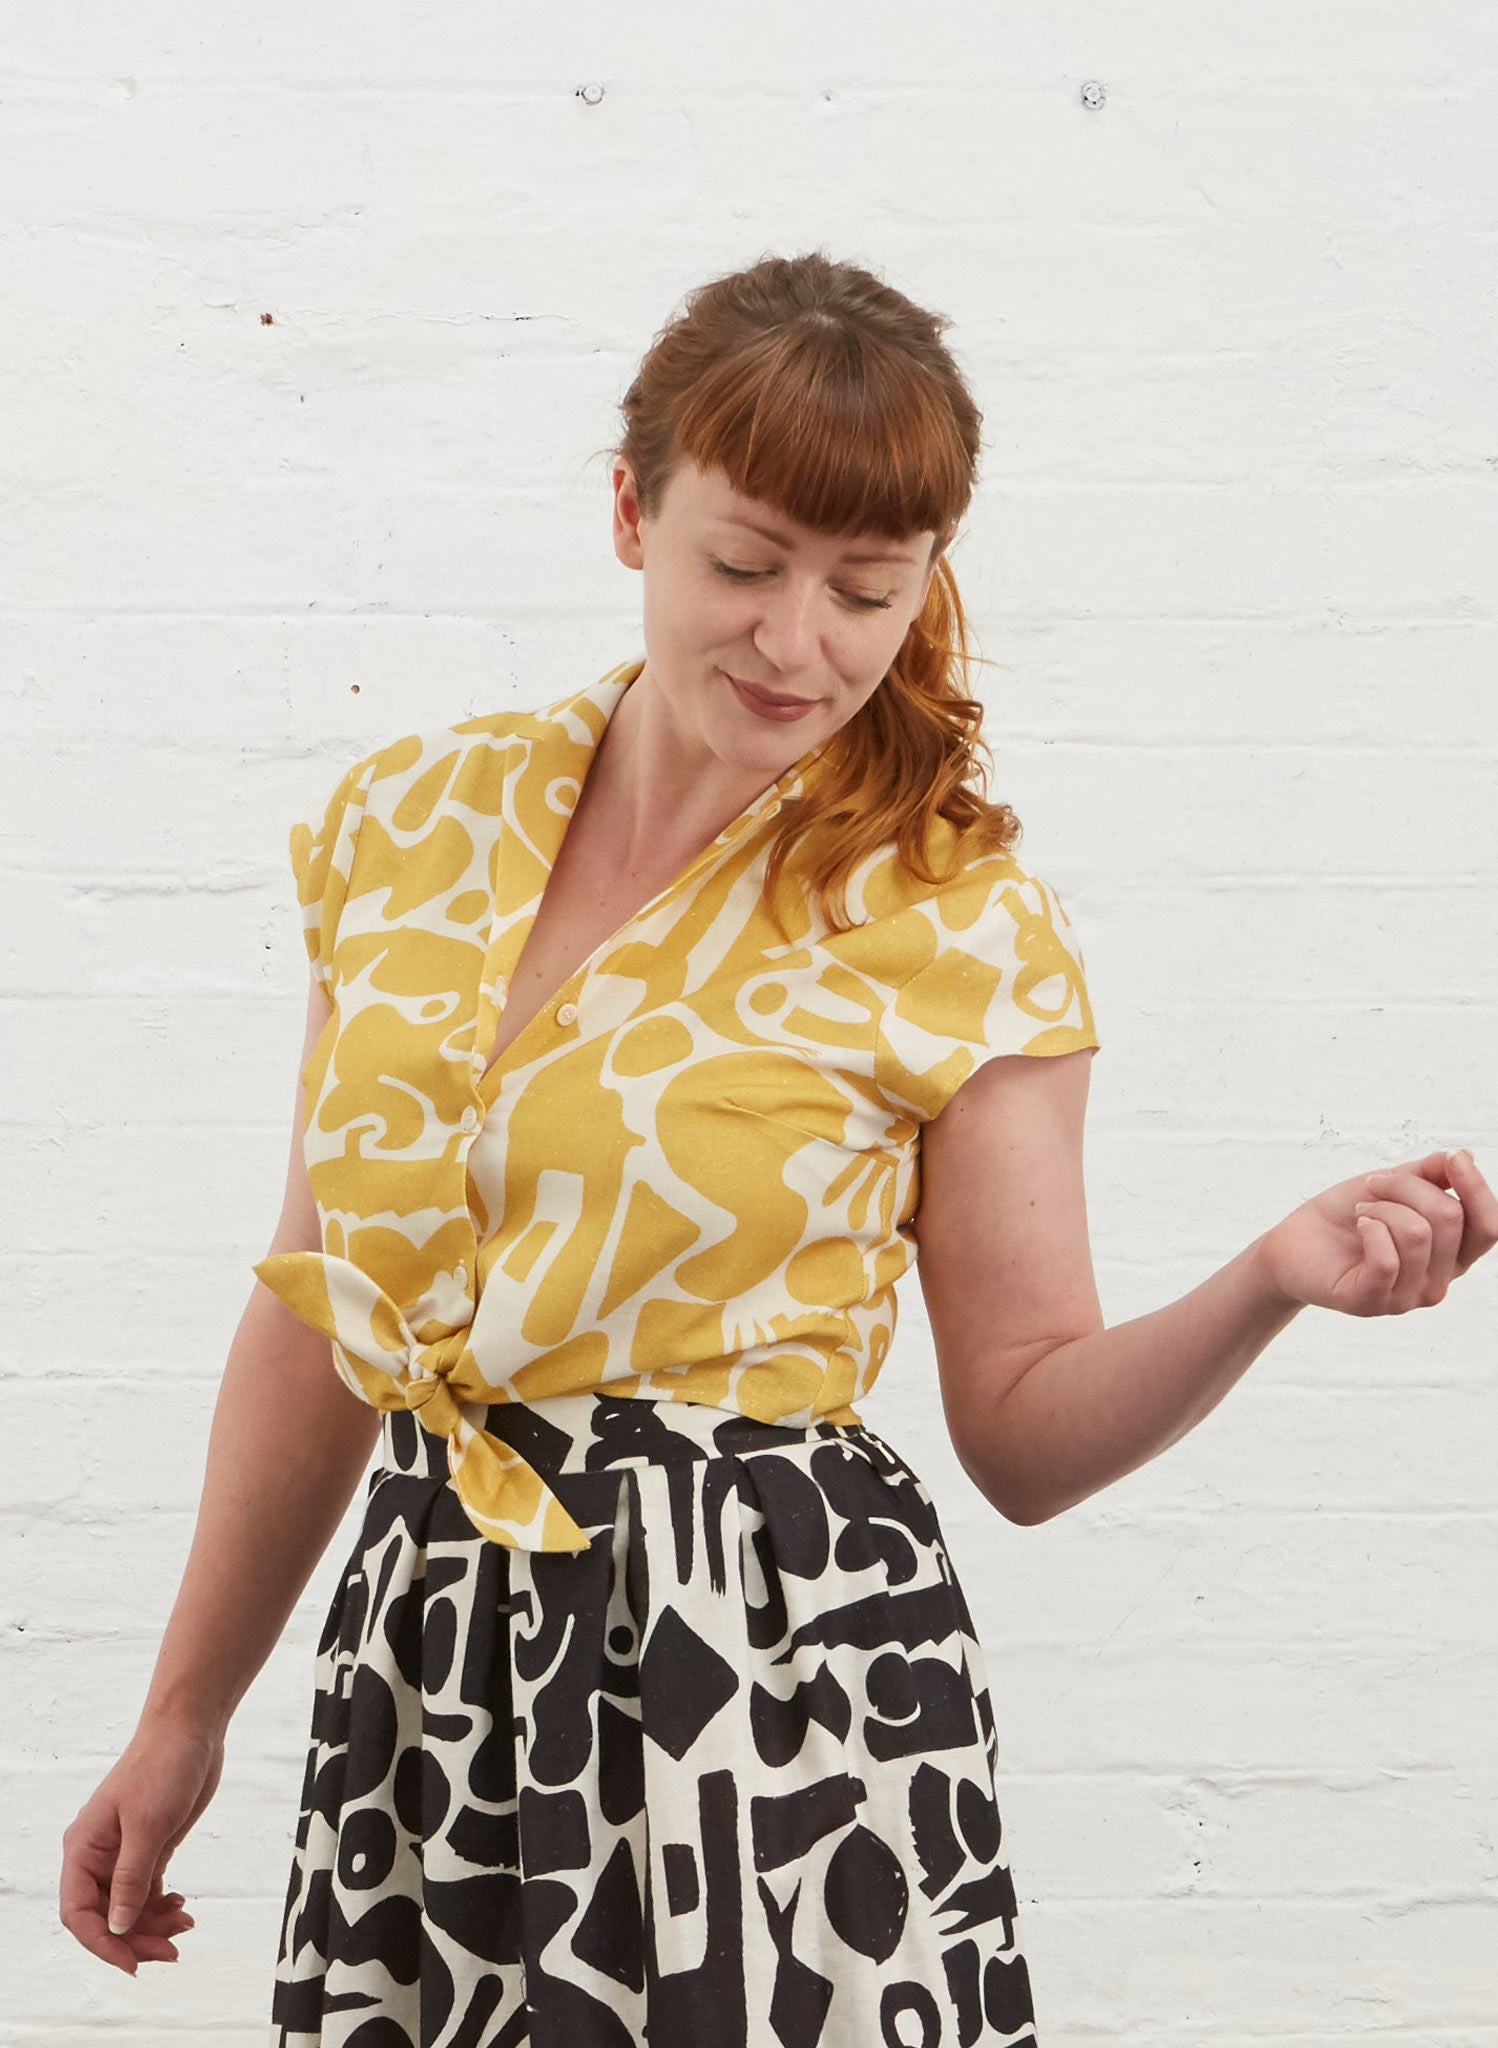 Photo of Alison ( fringed auburn hair )wearing a cropped tie waist button up blouse with yellow and white abstract shape fabric. Also wearing black and white Ada skirt in same pattern.